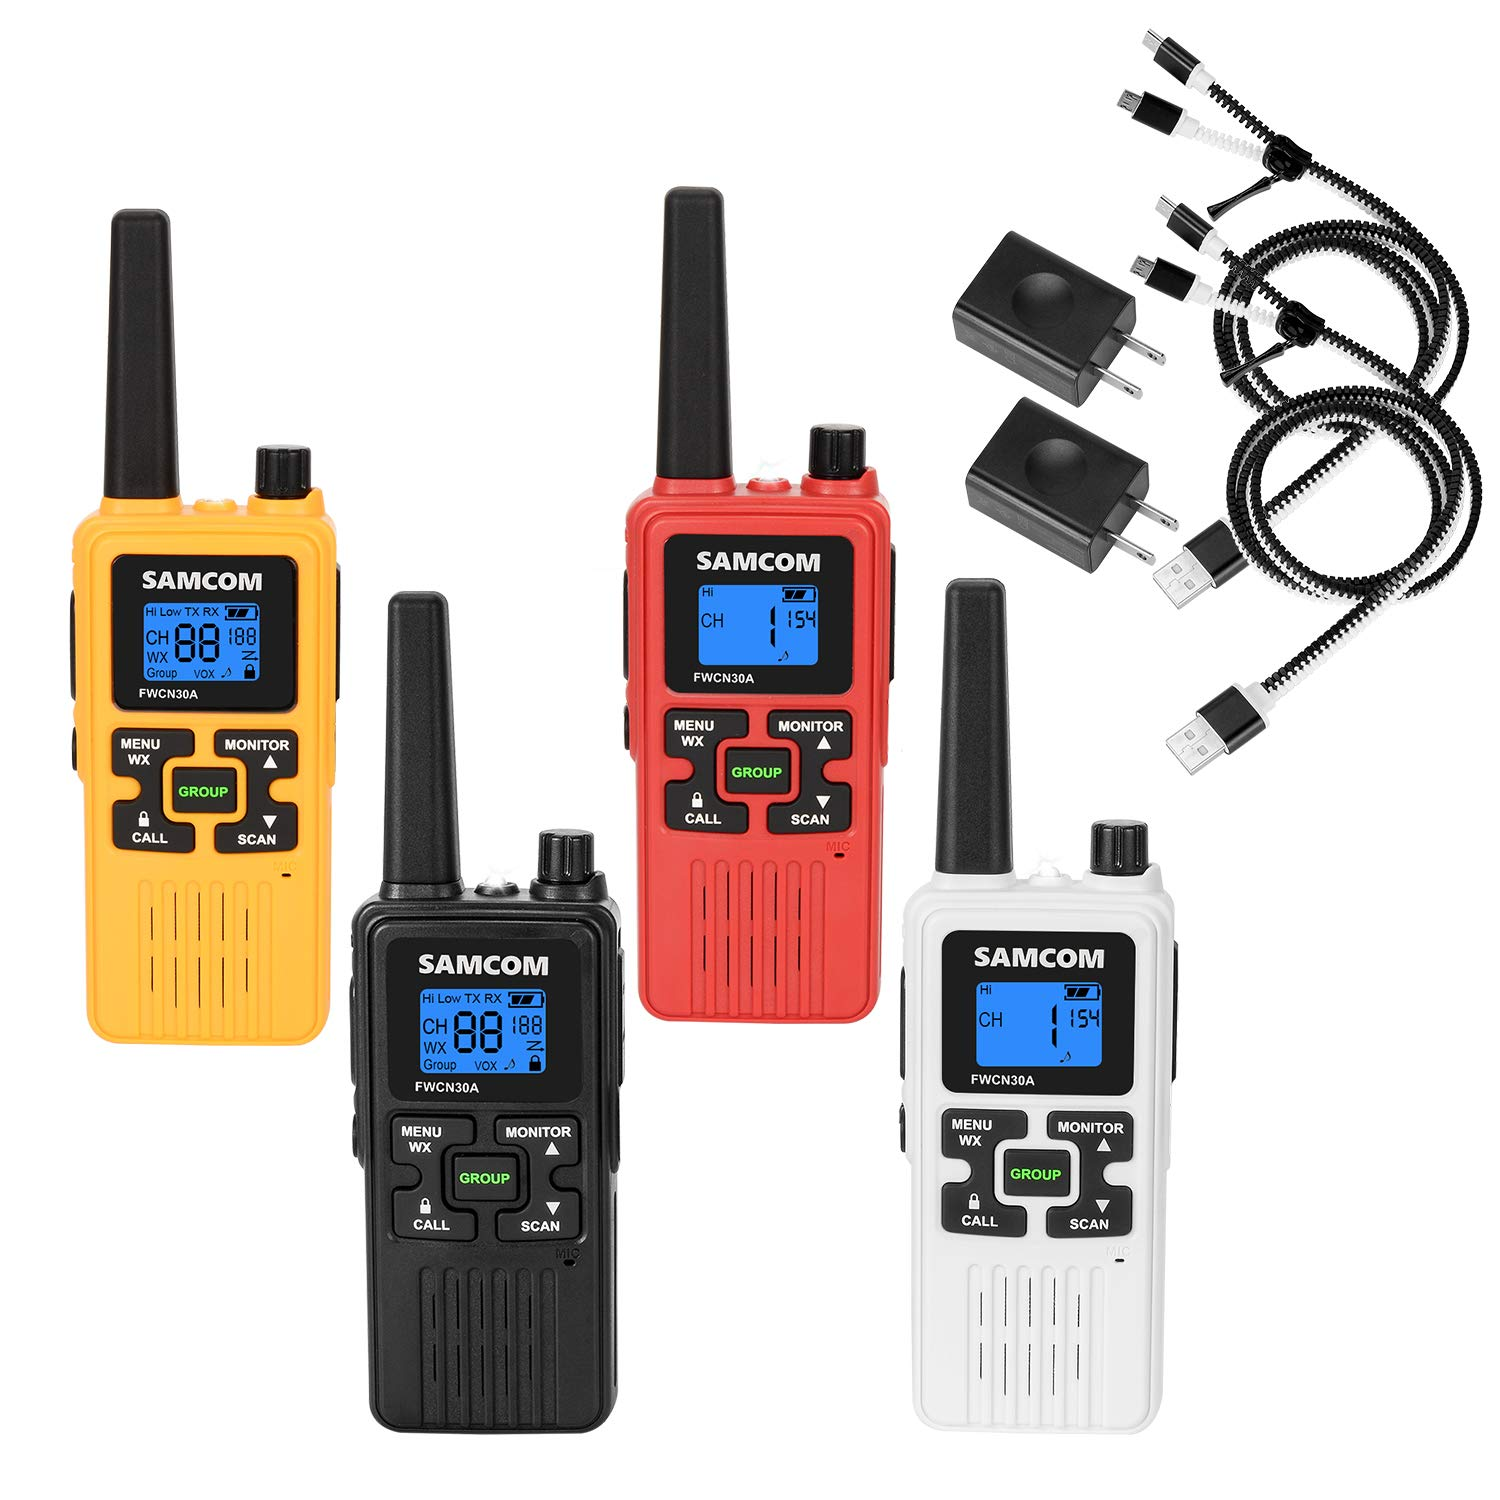 FRS Two Way Radio 22CH with 1250mAh Rechargeable Battery LCD Display LED Flashlight, License Free Walkie Talkies 36 Miles Long Range with Group VOX SCAN NOAA Call Alert Function, 4 Packs by SAMCOM